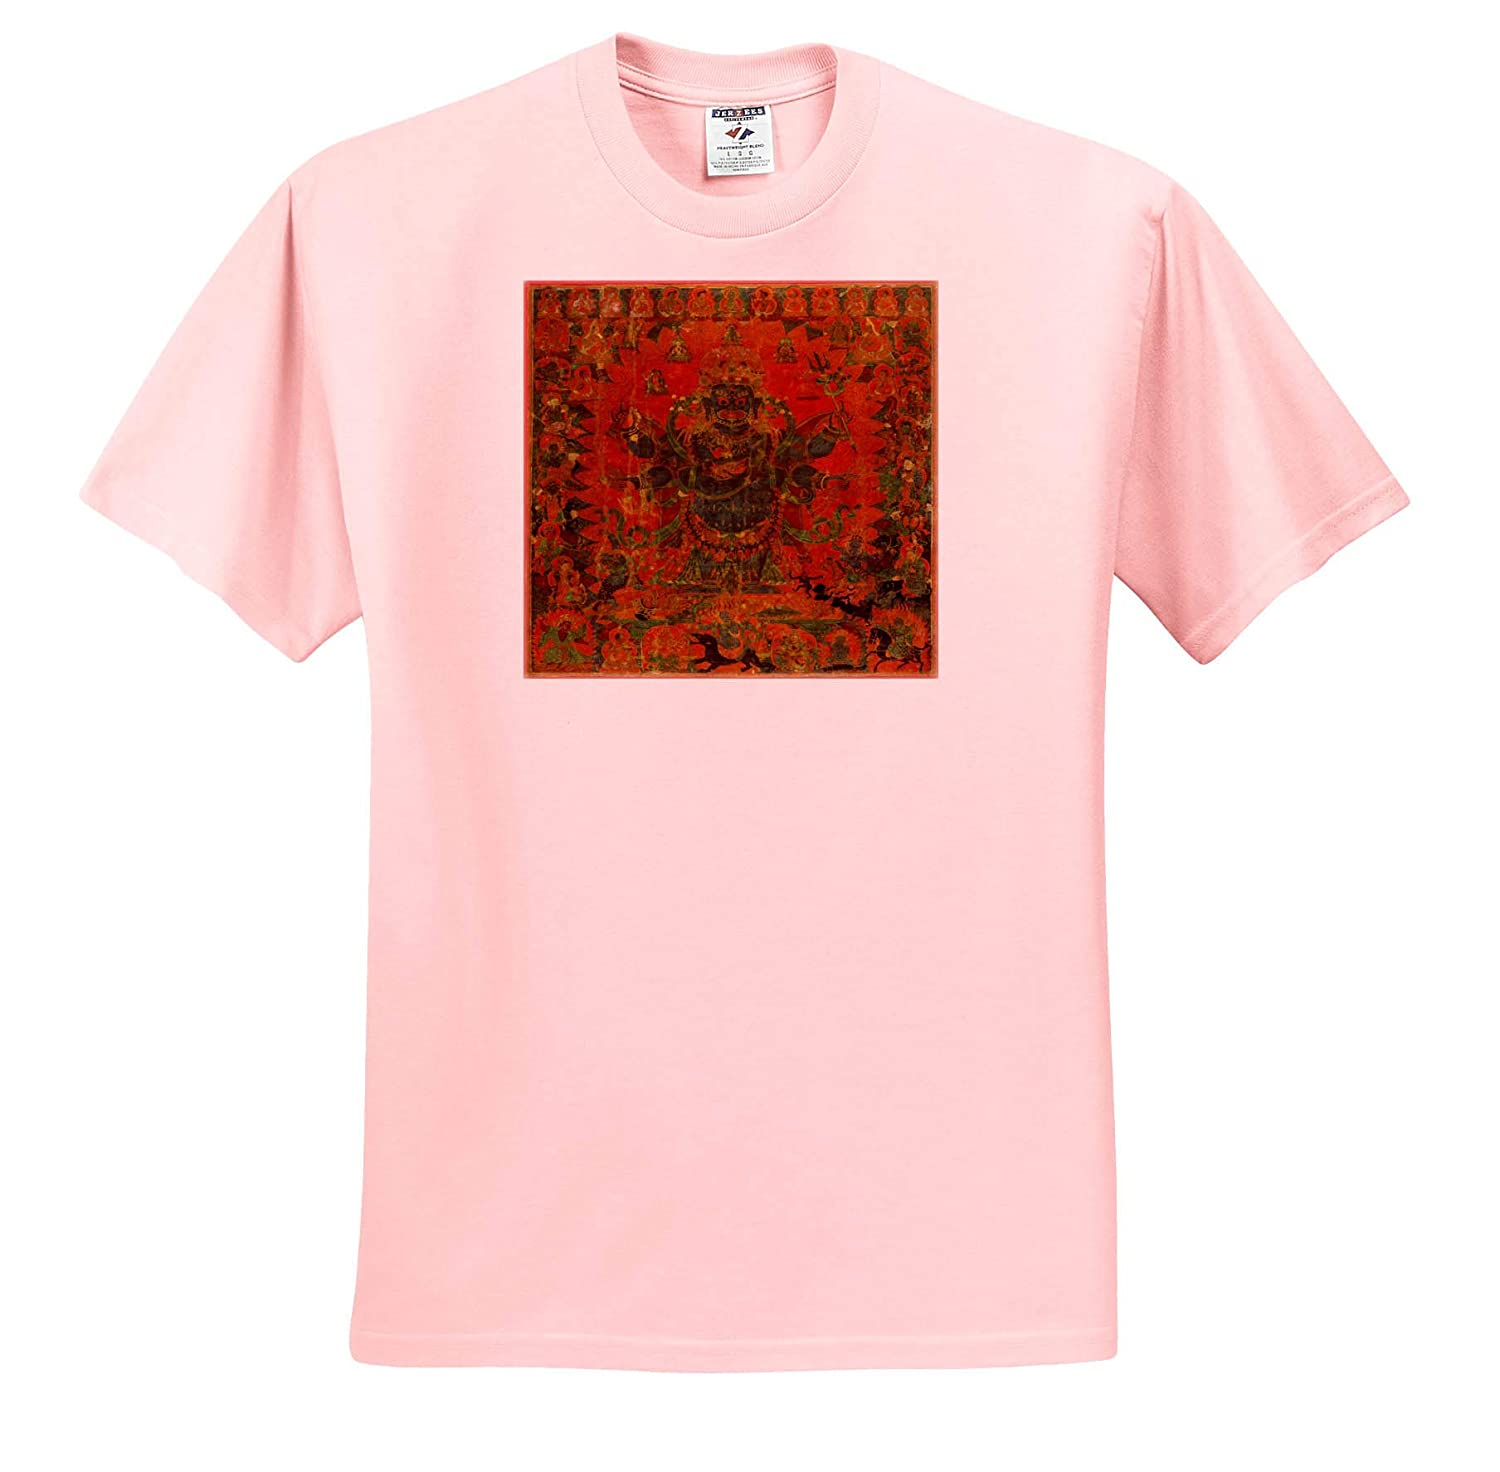 World Tapestries 3dRose Lens Art by Florene Image of Ancient God Like Figure from Tibet Textile T-Shirts